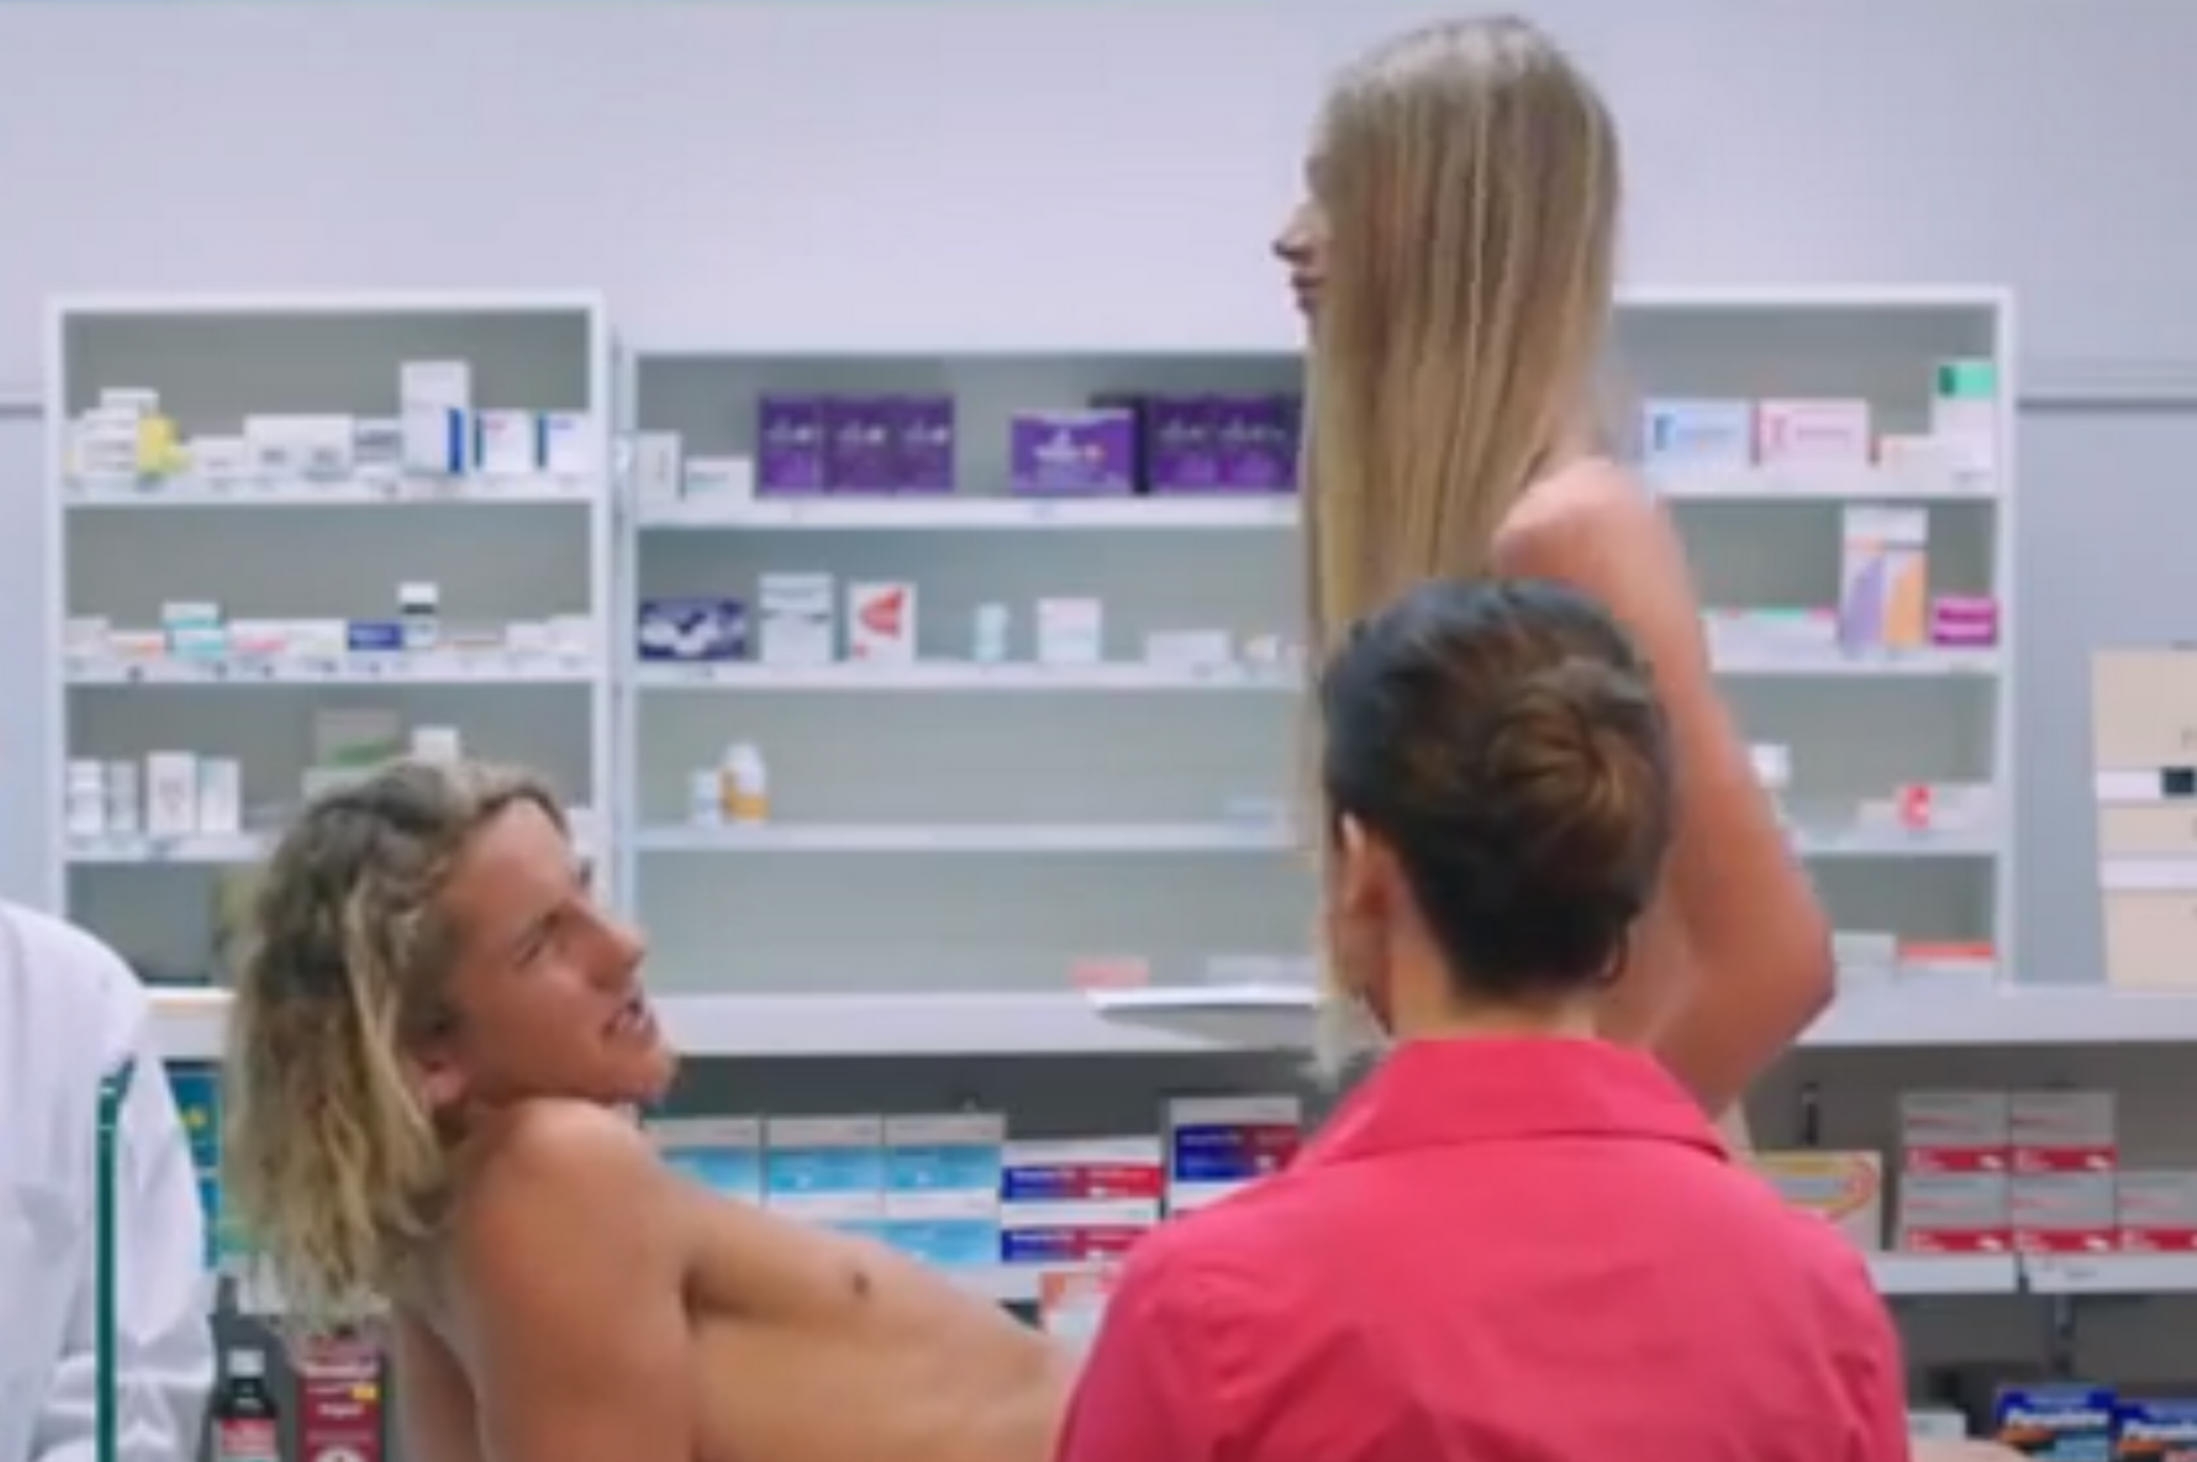 Kooky Australian Condom Ad too sexy video: Australian condom advert that was banned for being TOO SEXY - Mirror Online